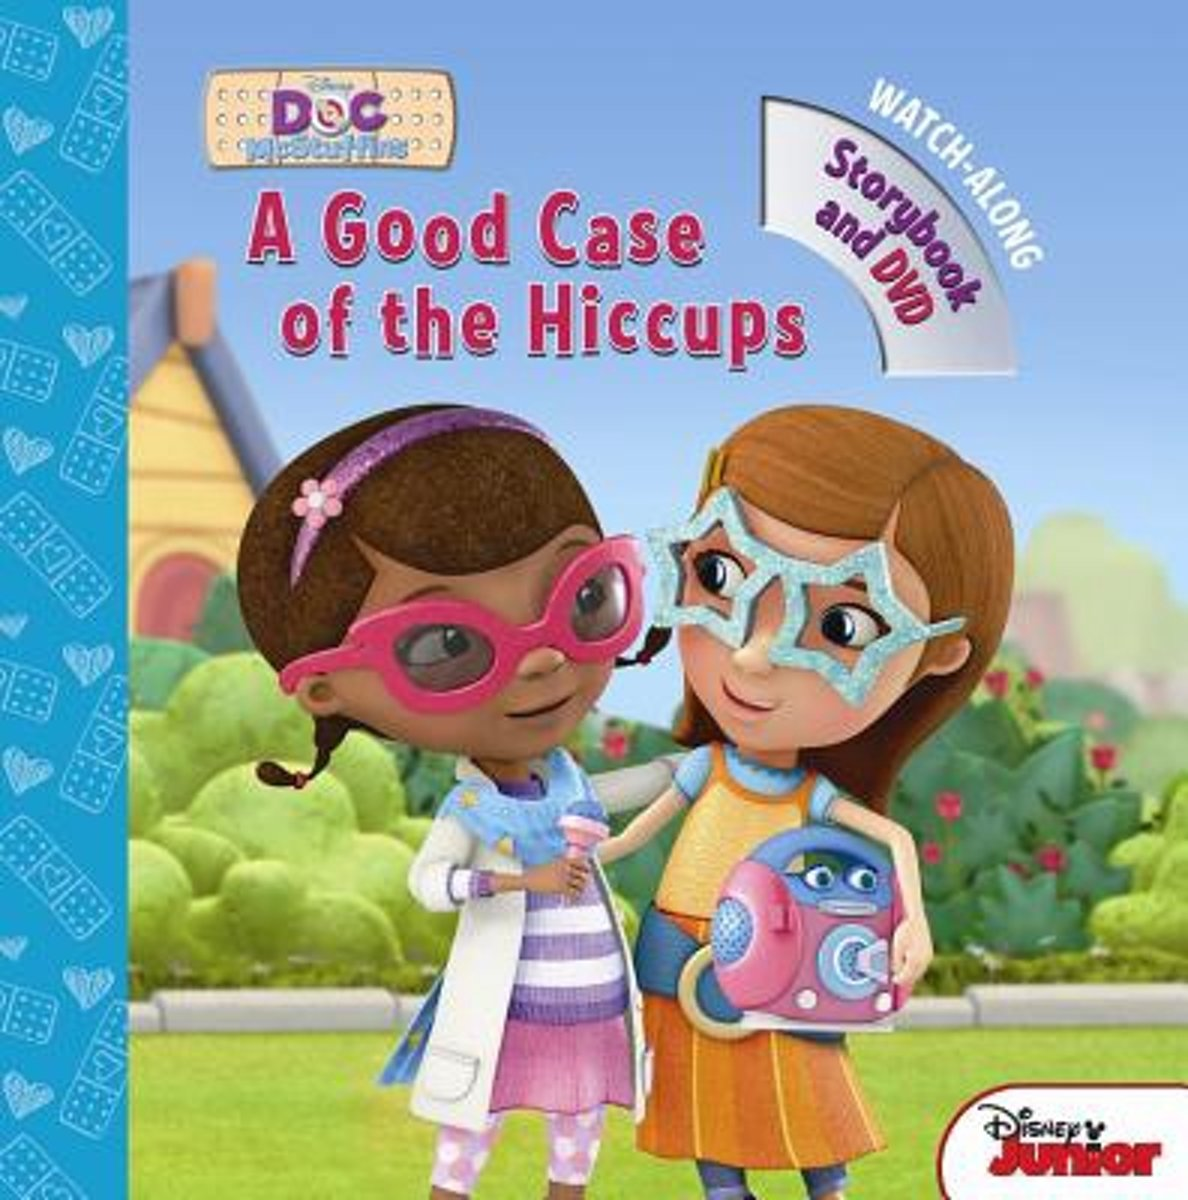 Doc McStuffins a Good Case of the Hiccups